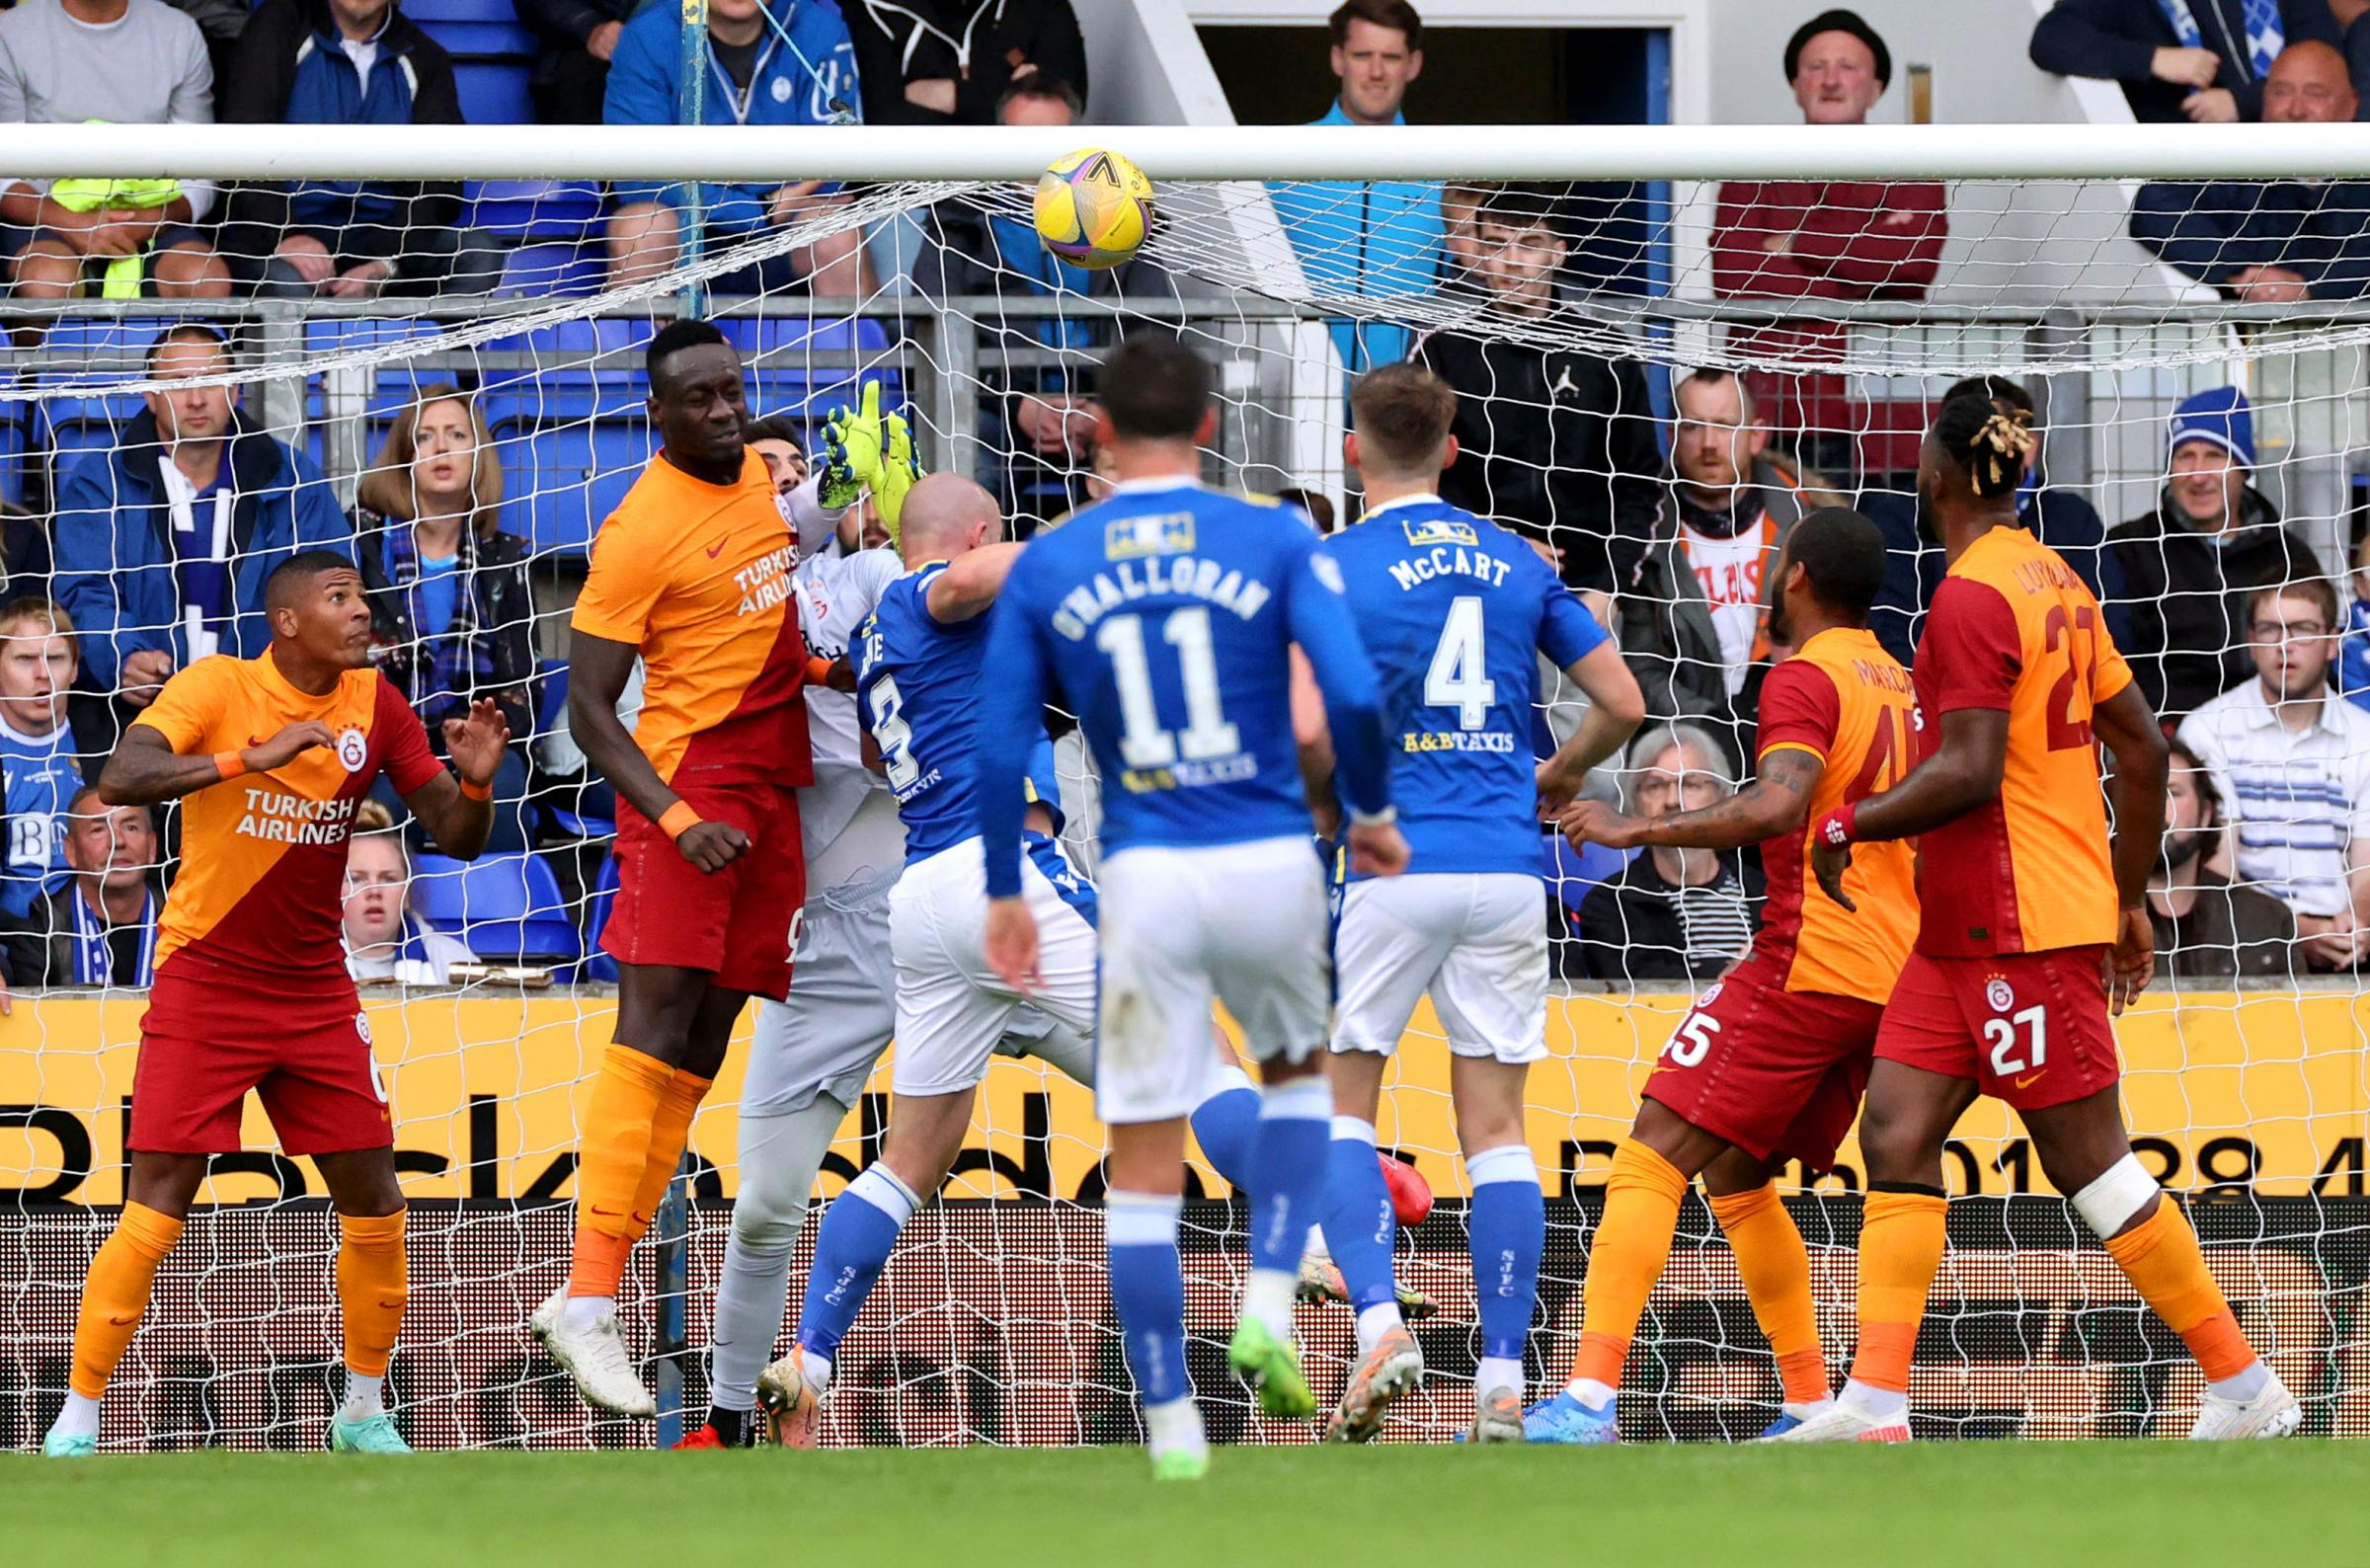 Inspired St Johnstone lose out to Galatasaray in the Europa League